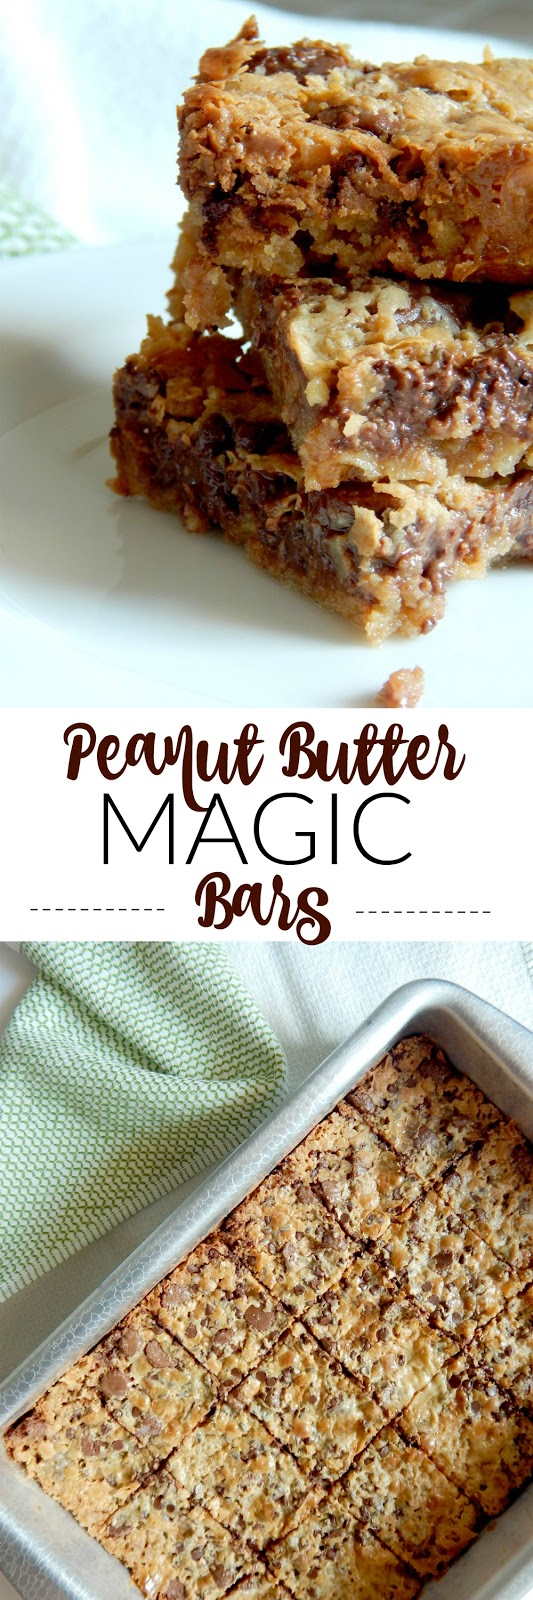 Peanut Butter Magic Bars...a chewy, sticky, buttery peanut butter and chocolate dessert bar that everyone loves!  (sweetandsavoryfood.com)